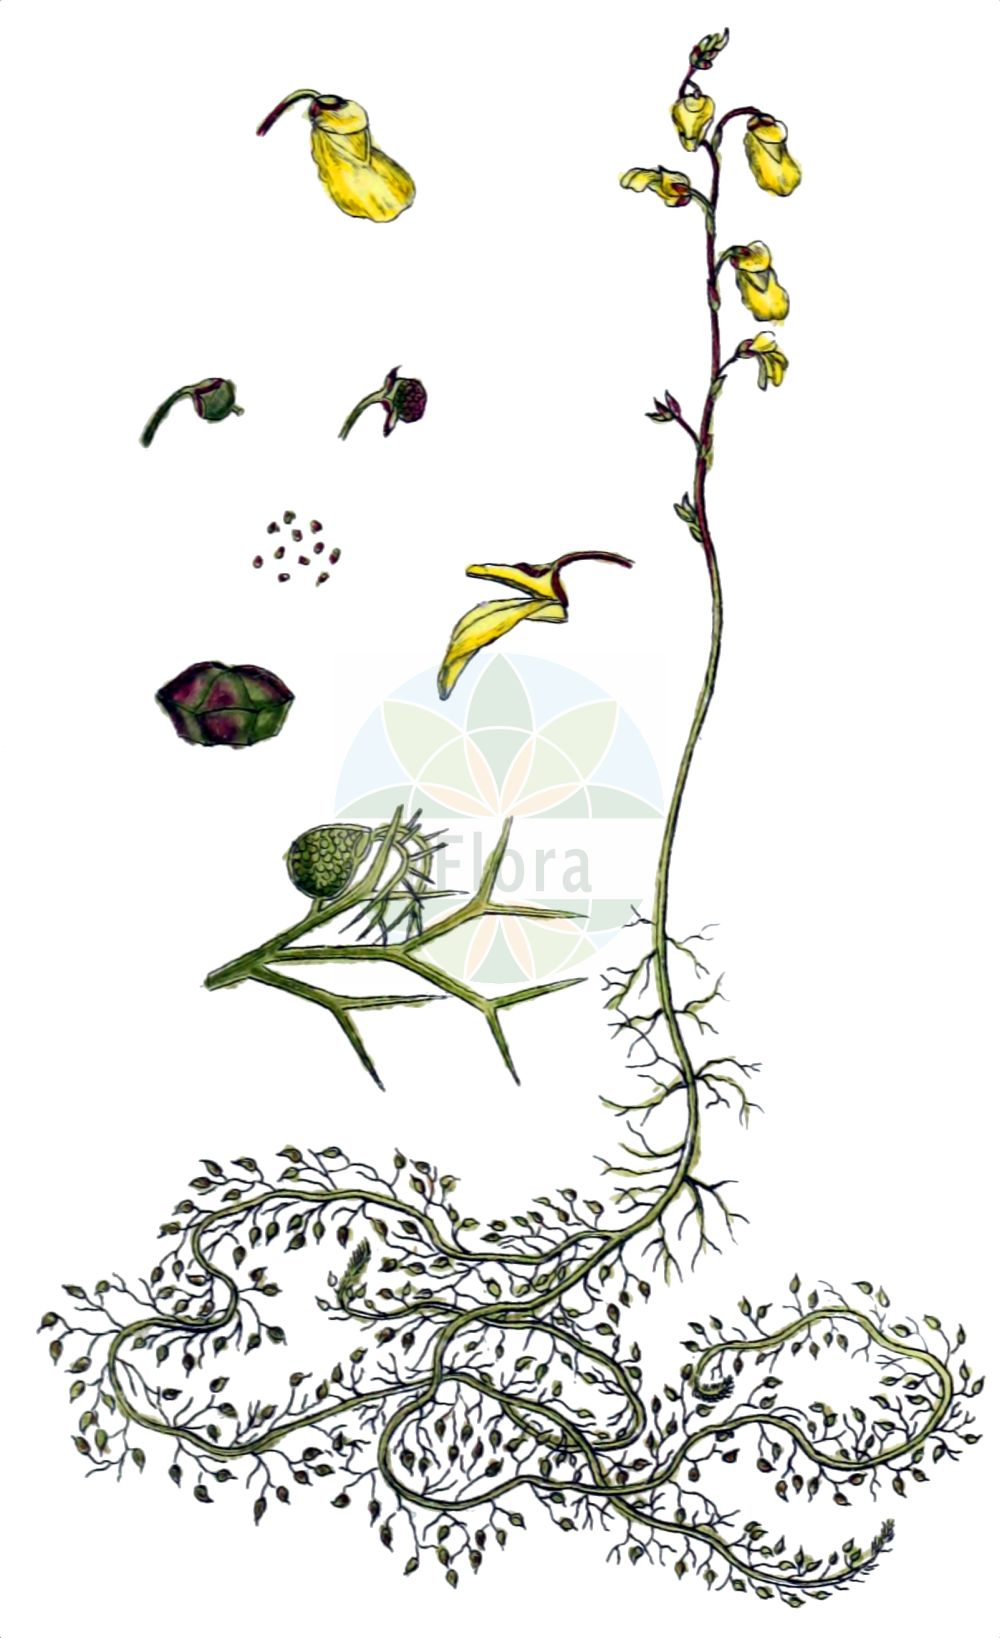 Historische Abbildung von Utricularia minor (Kleiner Wasserschlauch - Lesser Bladderwort). Das Bild zeigt Blatt, Bluete, Frucht und Same. ---- Historical Drawing of Utricularia minor (Kleiner Wasserschlauch - Lesser Bladderwort).The image is showing leaf, flower, fruit and seed.(Utricularia minor,Kleiner Wasserschlauch,Lesser Bladderwort,Utricularia minor,Kleiner Wasserschlauch,Kleiner Wasserschlauch,Lesser Bladderwort,Utricularia,Wasserschlauch,Bladderwort,Lentibulariaceae,Wasserschlauchgewaechse,Bladderwort family,Blatt,Bluete,Frucht,Same,leaf,flower,fruit,seed,Sturm (1796f))